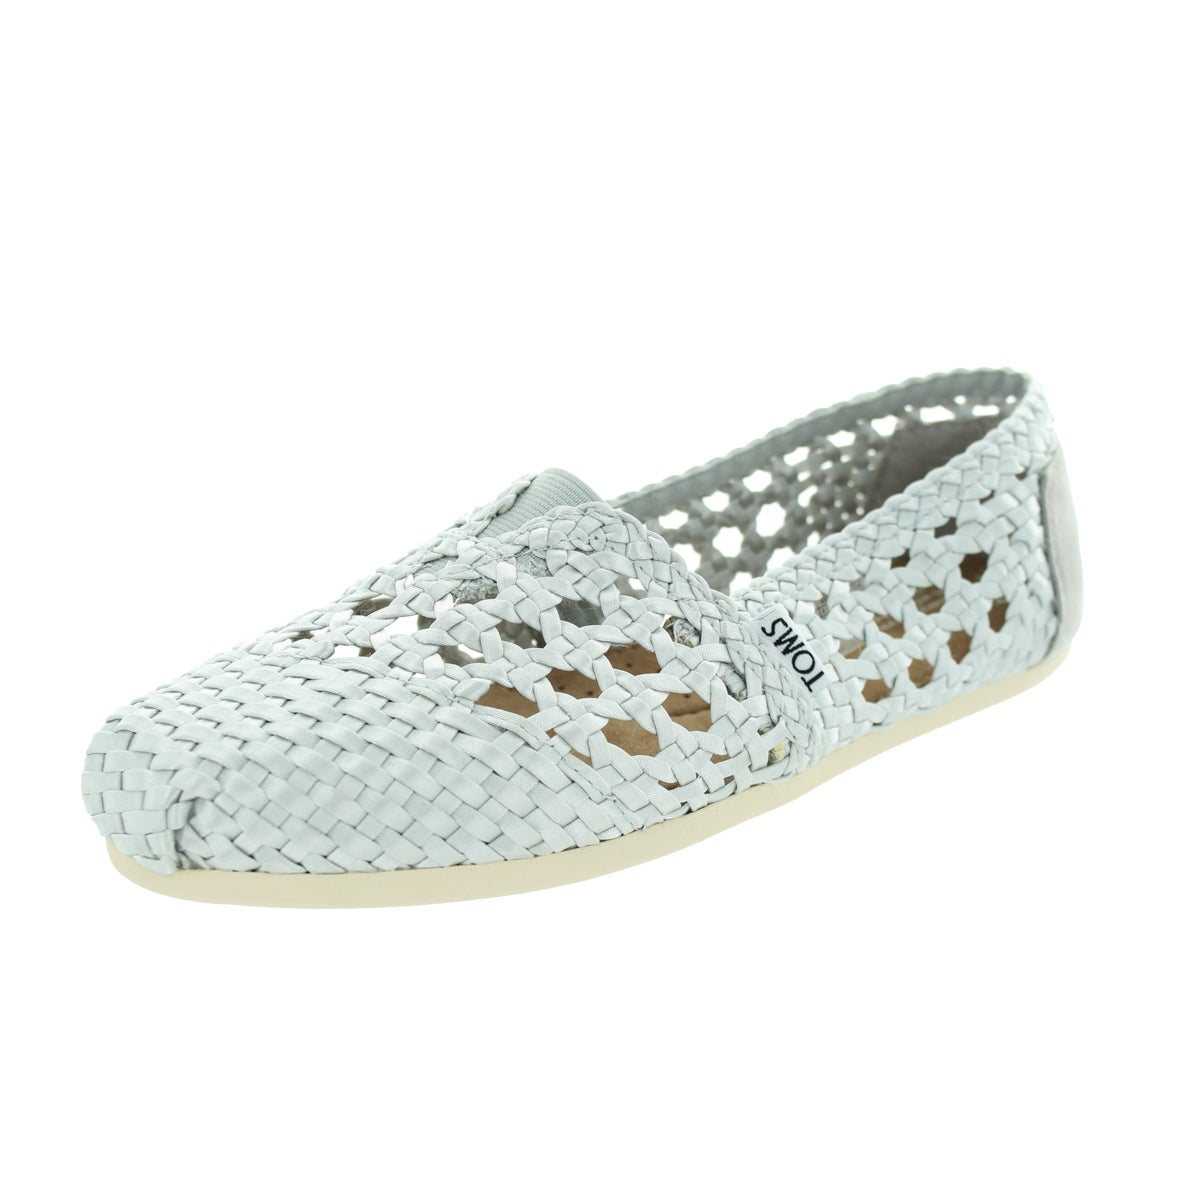 3e539f9e04 TOMS Shoes Shoes | Shop our Best Clothing & Shoes Deals Online at Overstock